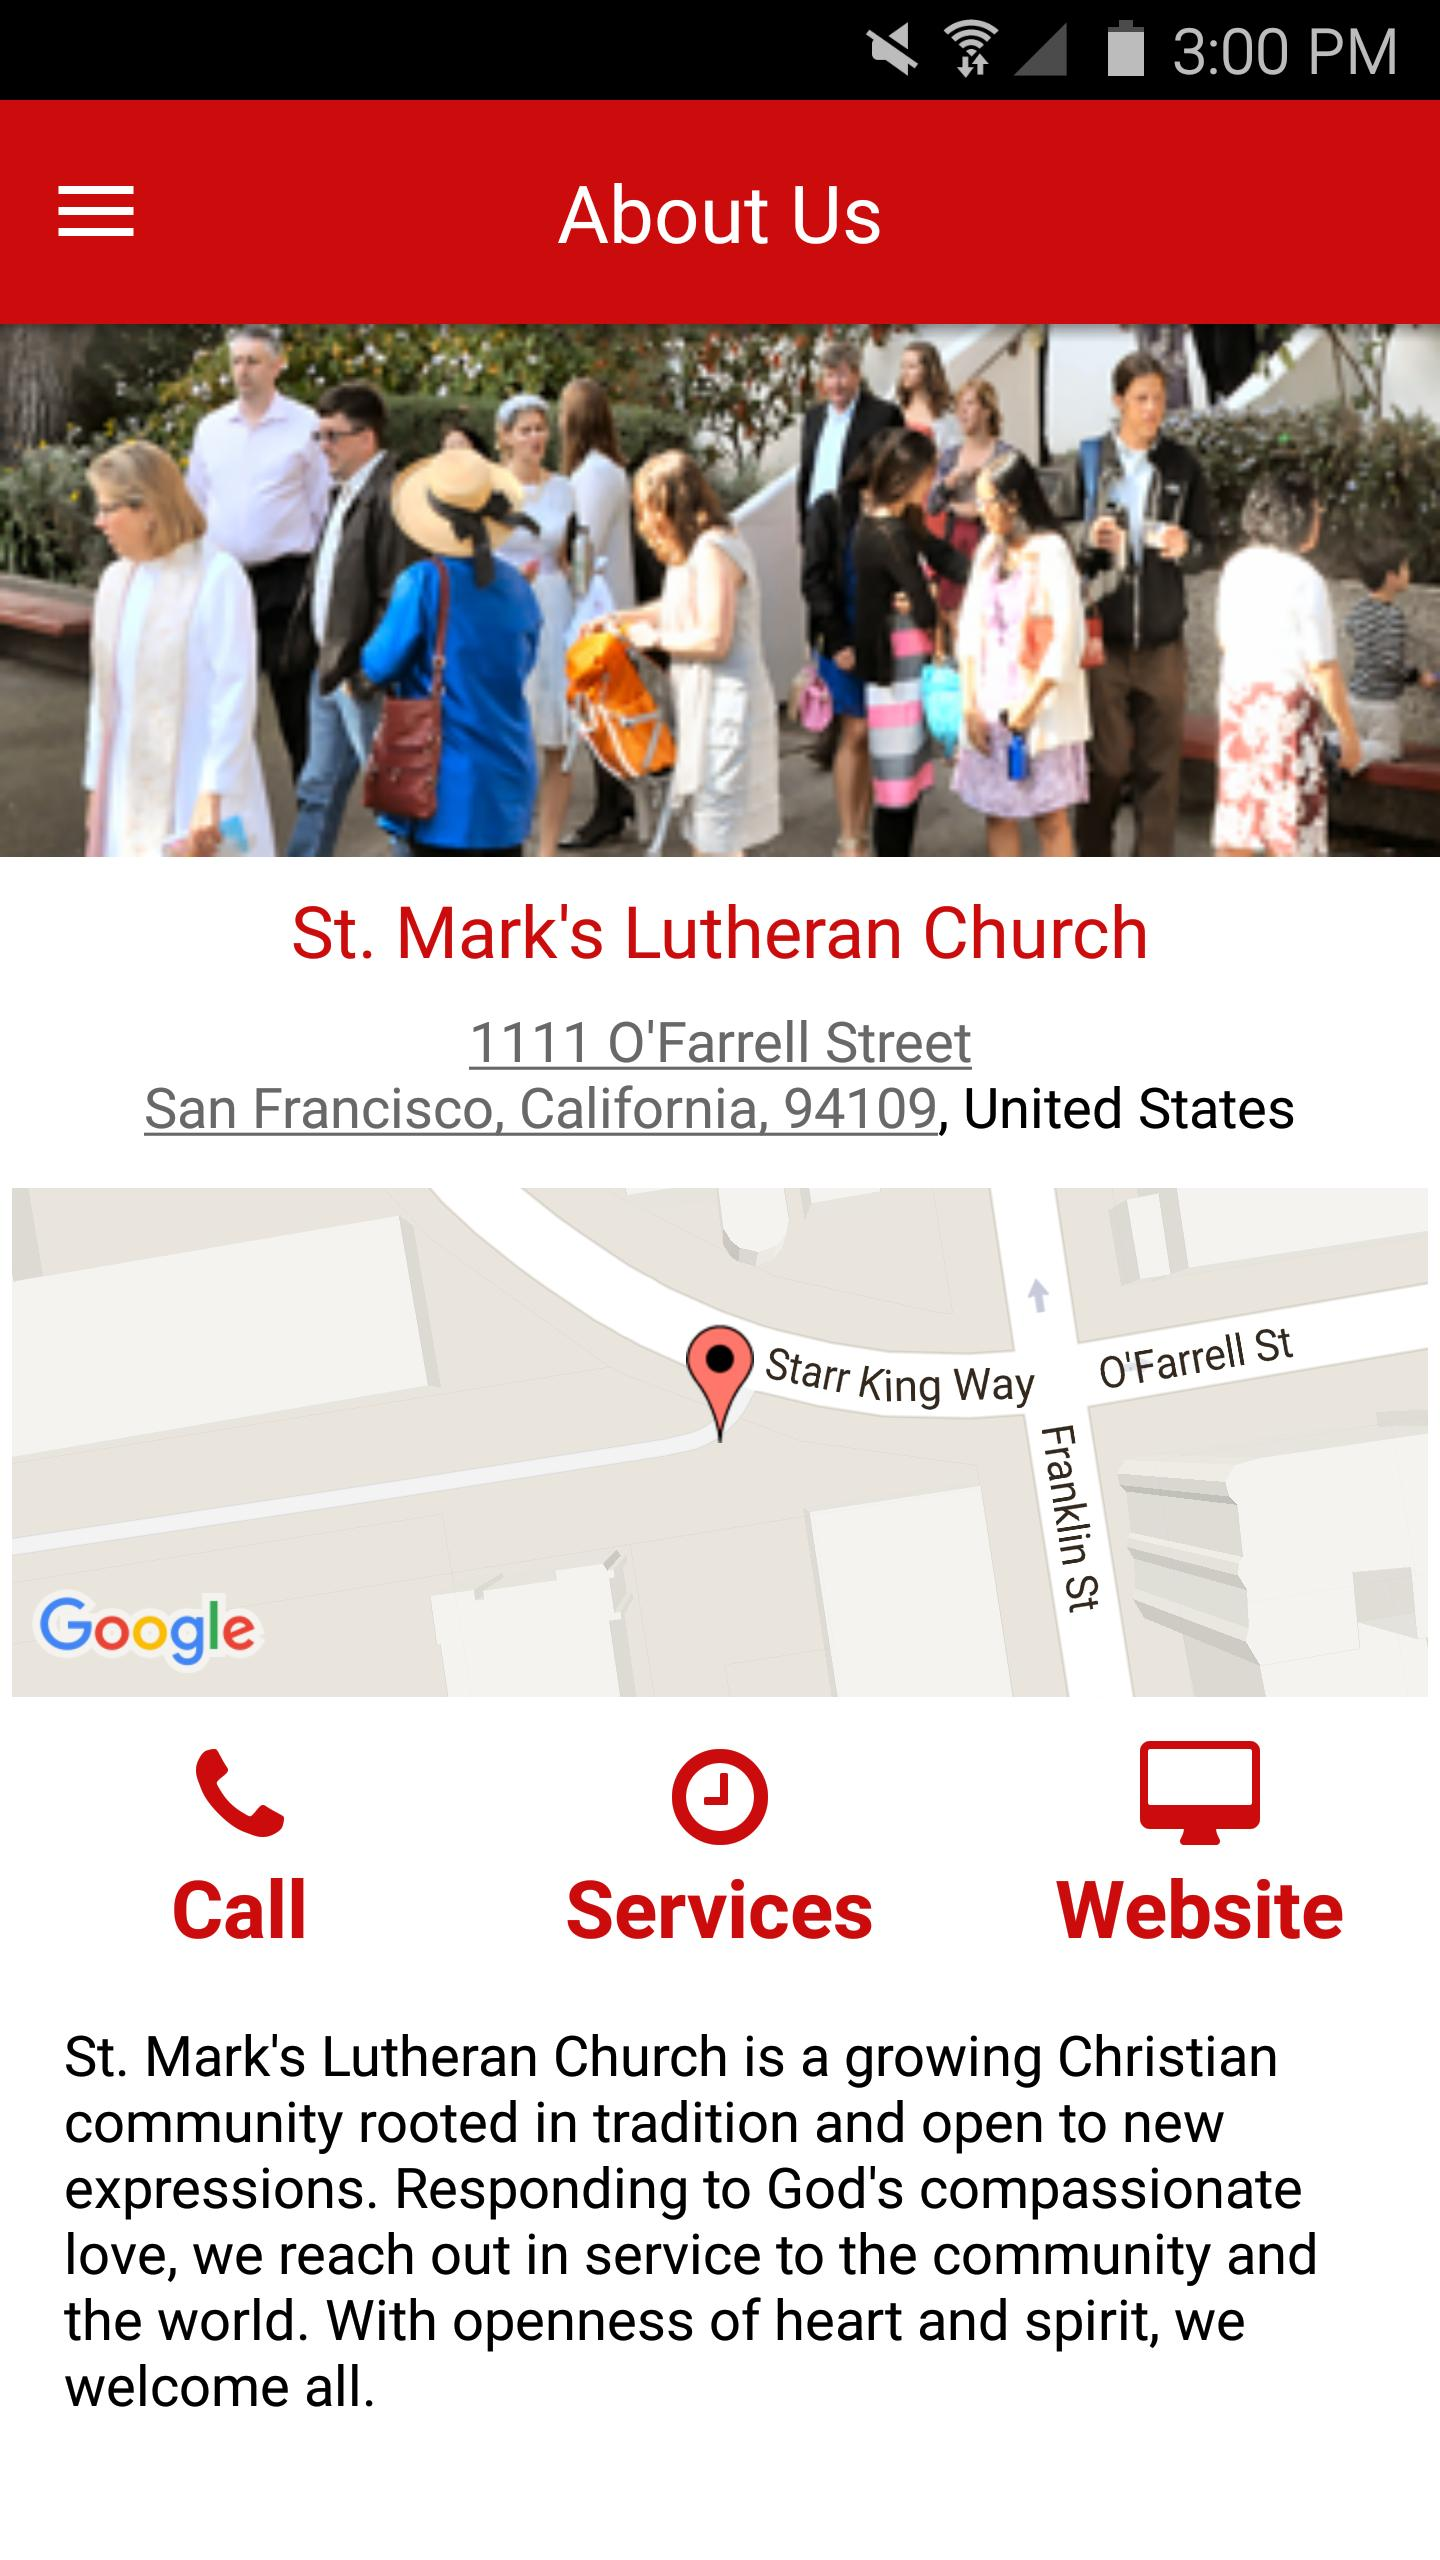 St. Mark's Lutheran Church poster